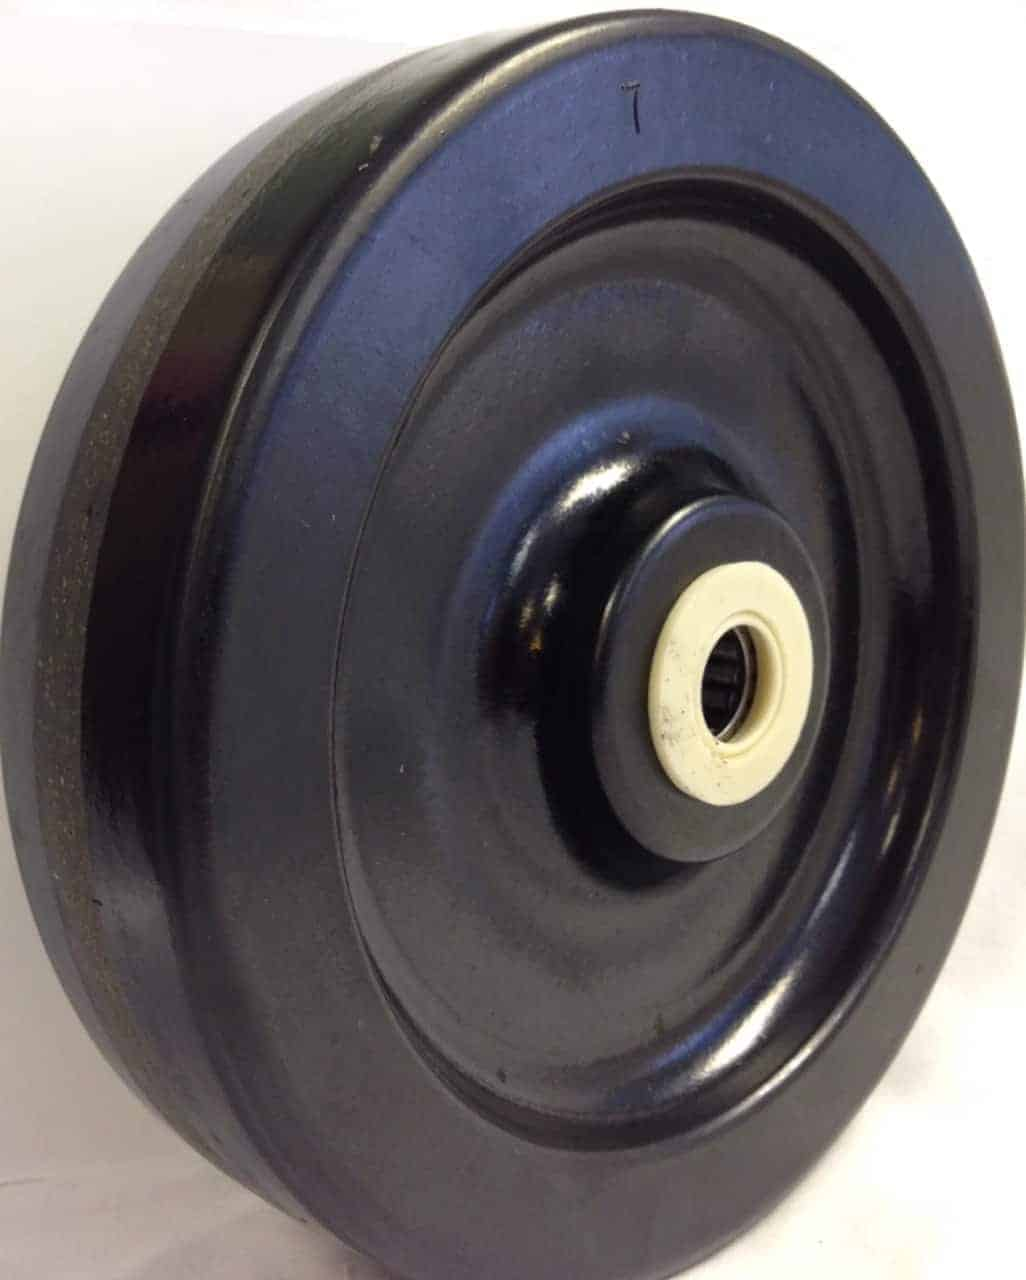 16″ Phenolic Wheel With 4-1/4″ Hub 1-1/4″ Roller Bearing 8000 Lbs Capacity